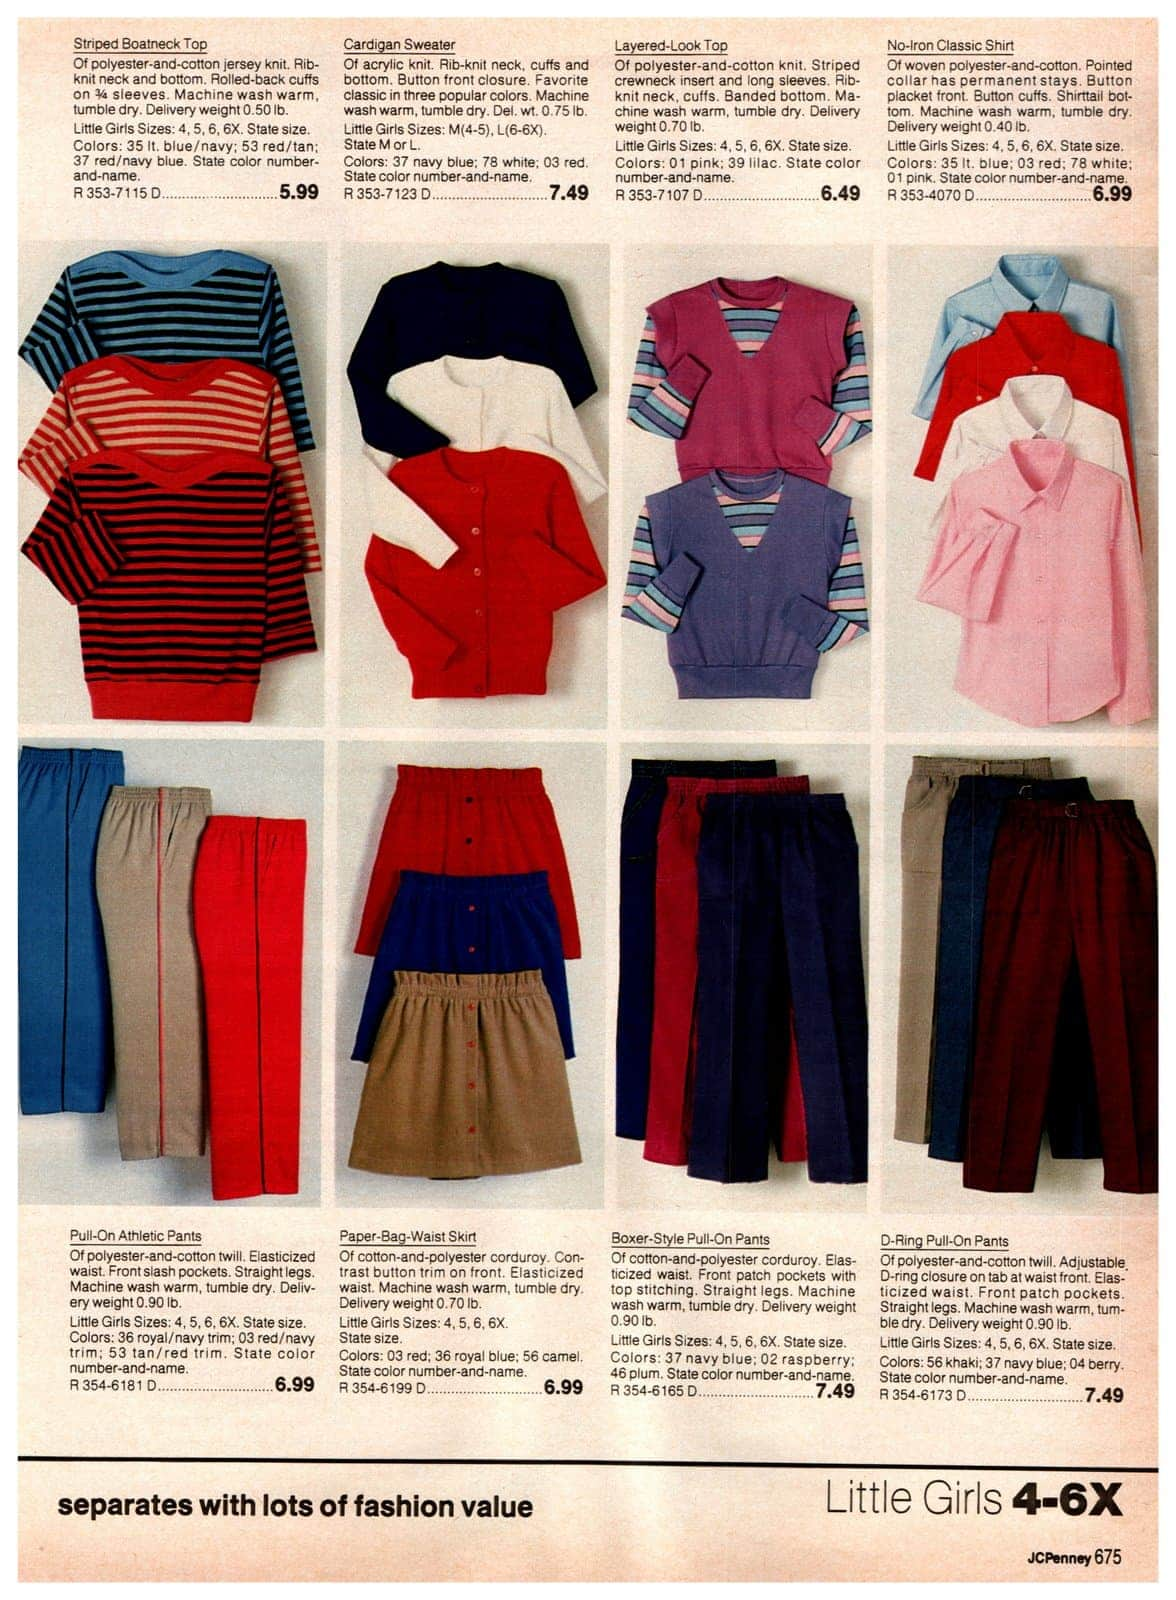 Stiped boatnet tops, cardigan sweaters, layered-look tops and no-iron classic shirts